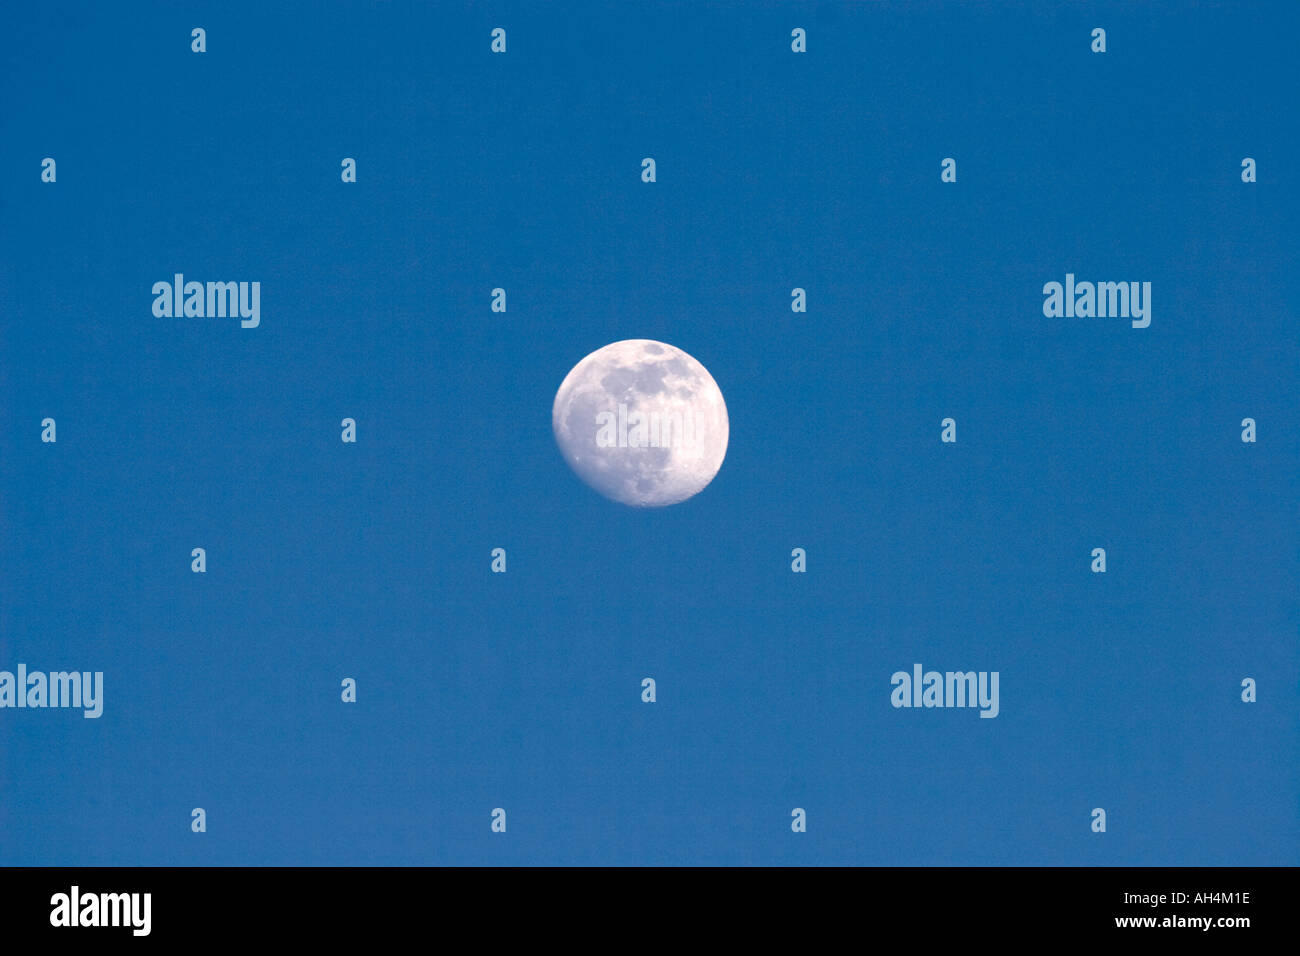 Almost Full Stock Photos & Almost Full Stock Images - Alamy